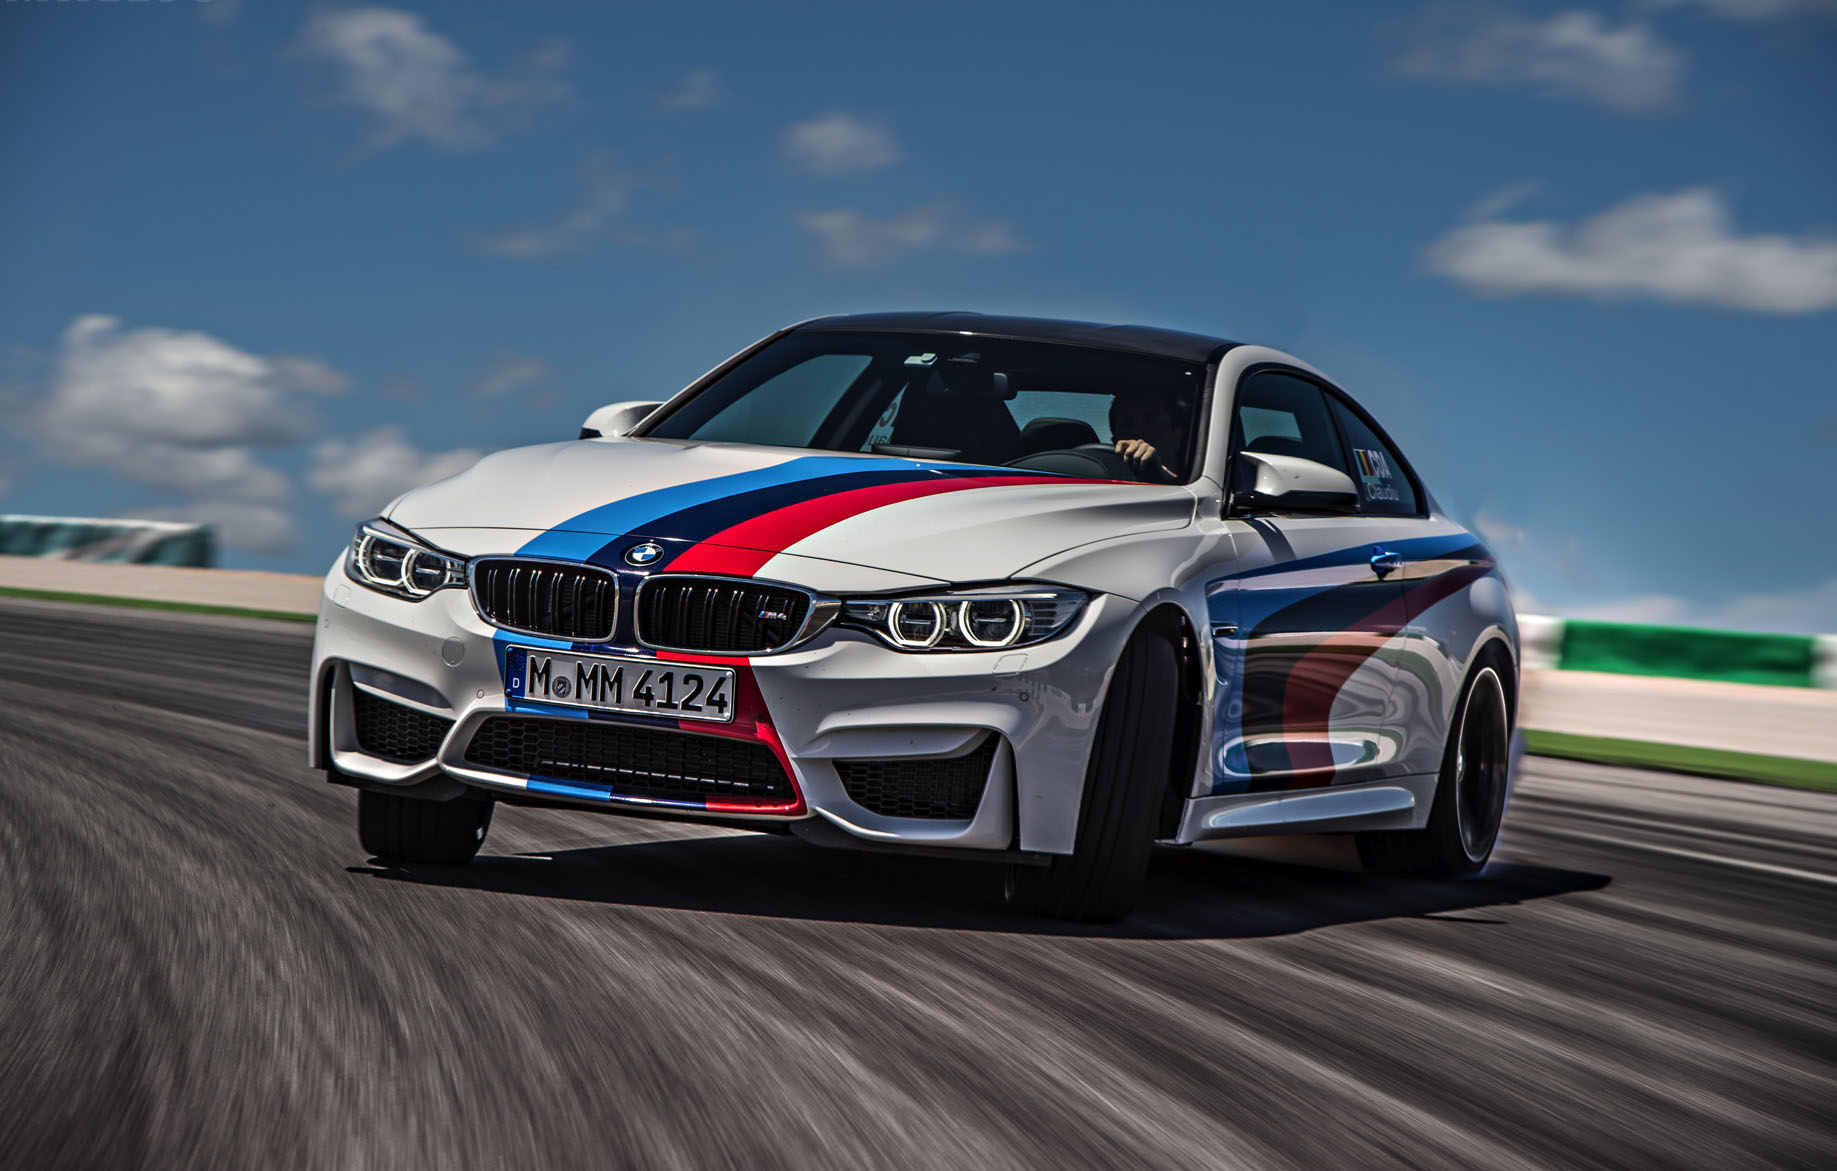 Rumor Bmw Developing Quot Drift Quot Function For M Cars Bimmerfile